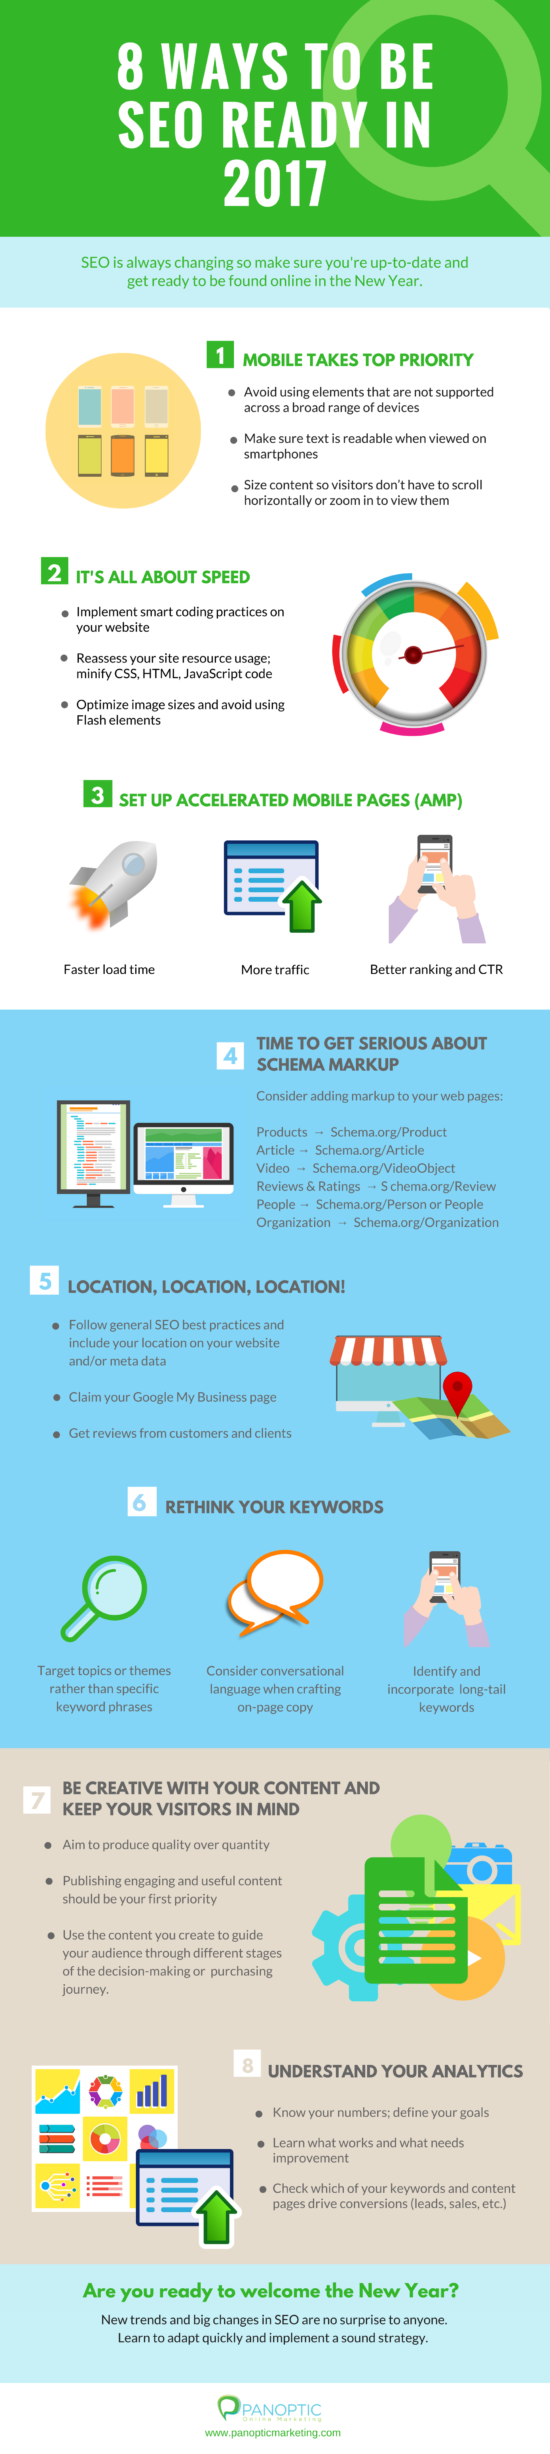 8-ways-to-be-seo-ready-in-2017-infograpics-infographics